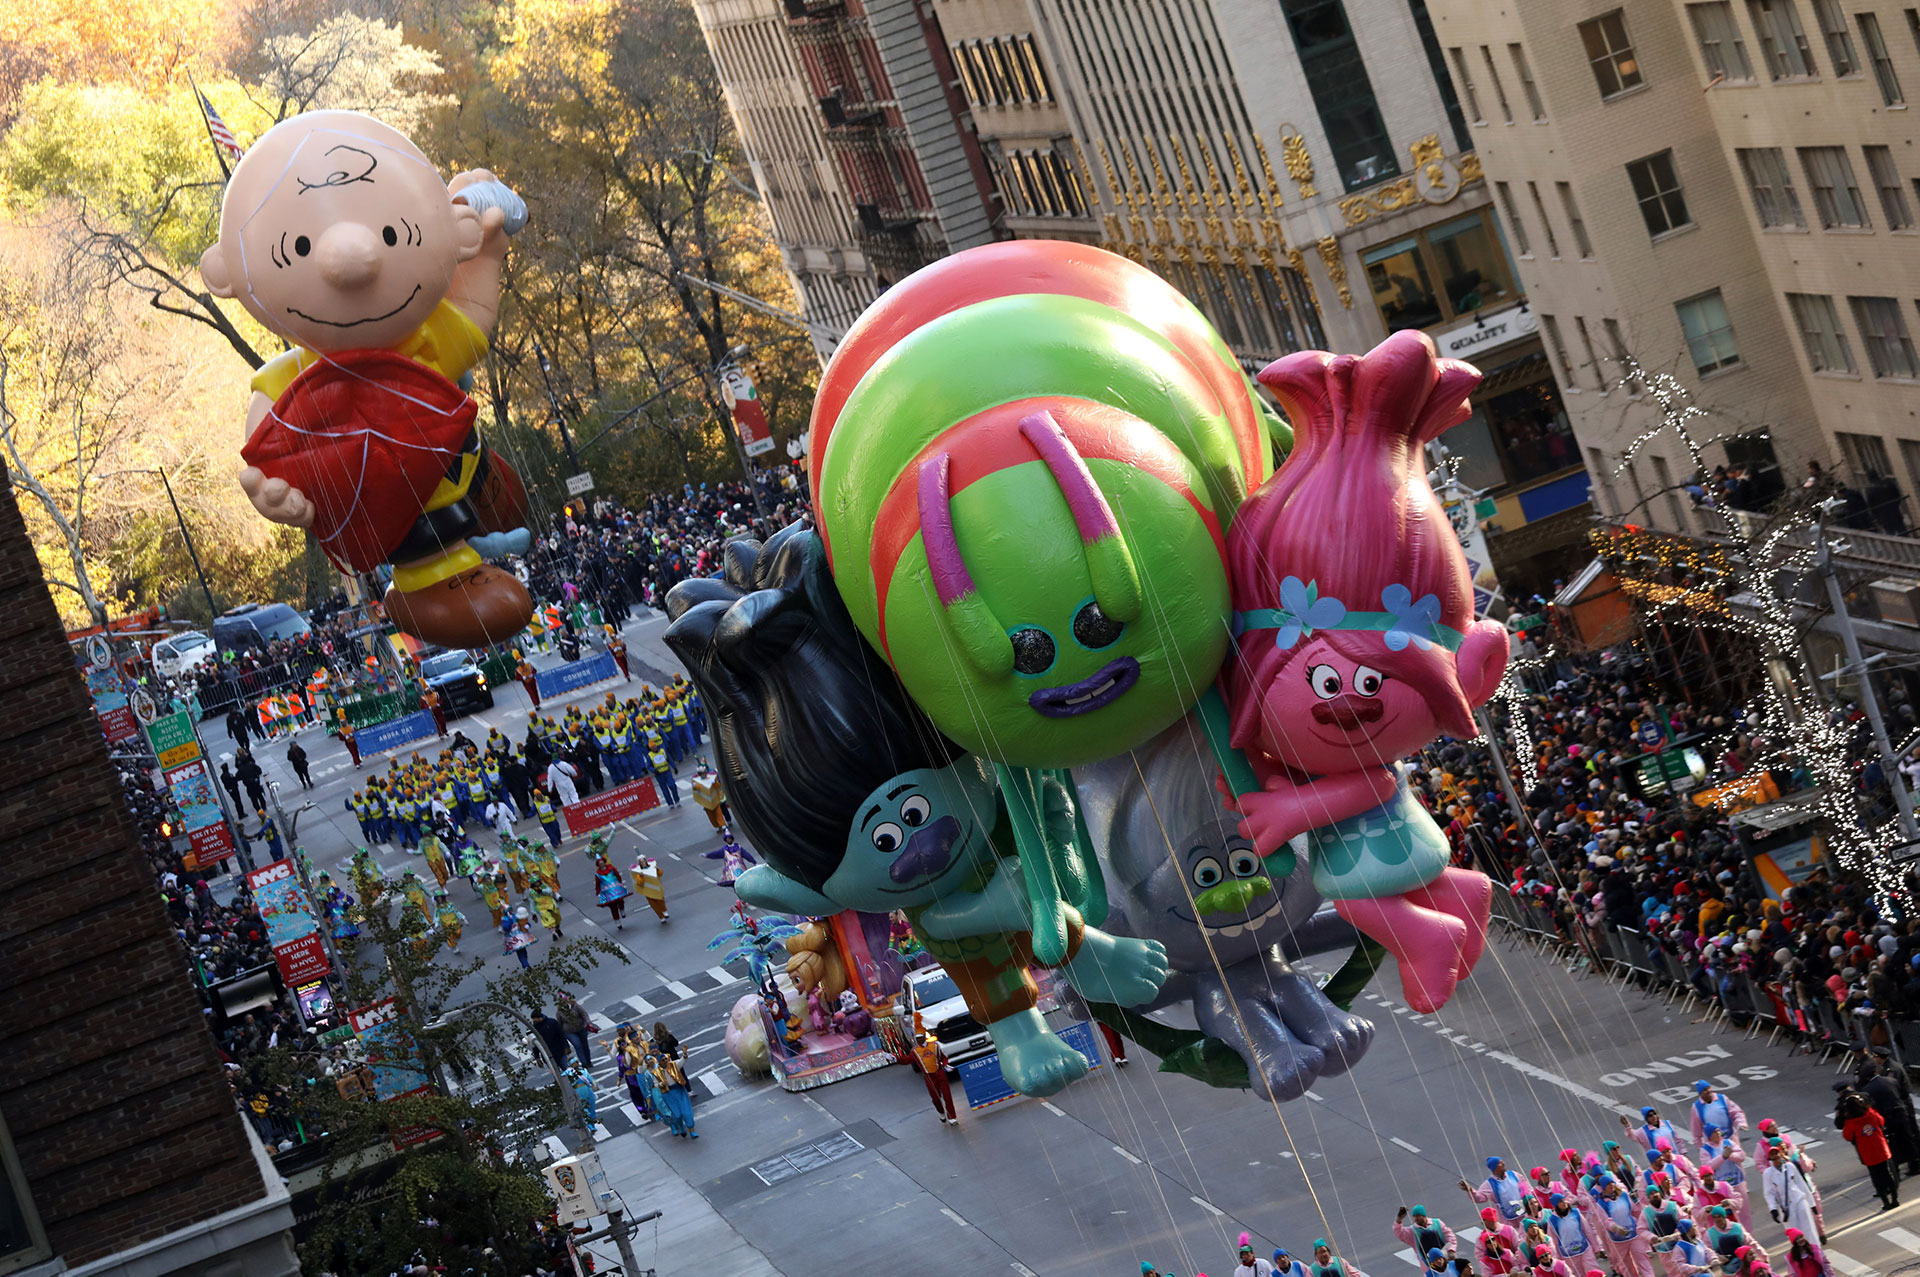 Los globos de Dream Works Animation descienden por la Sexta Avenida de Nueva York. (Reuters)